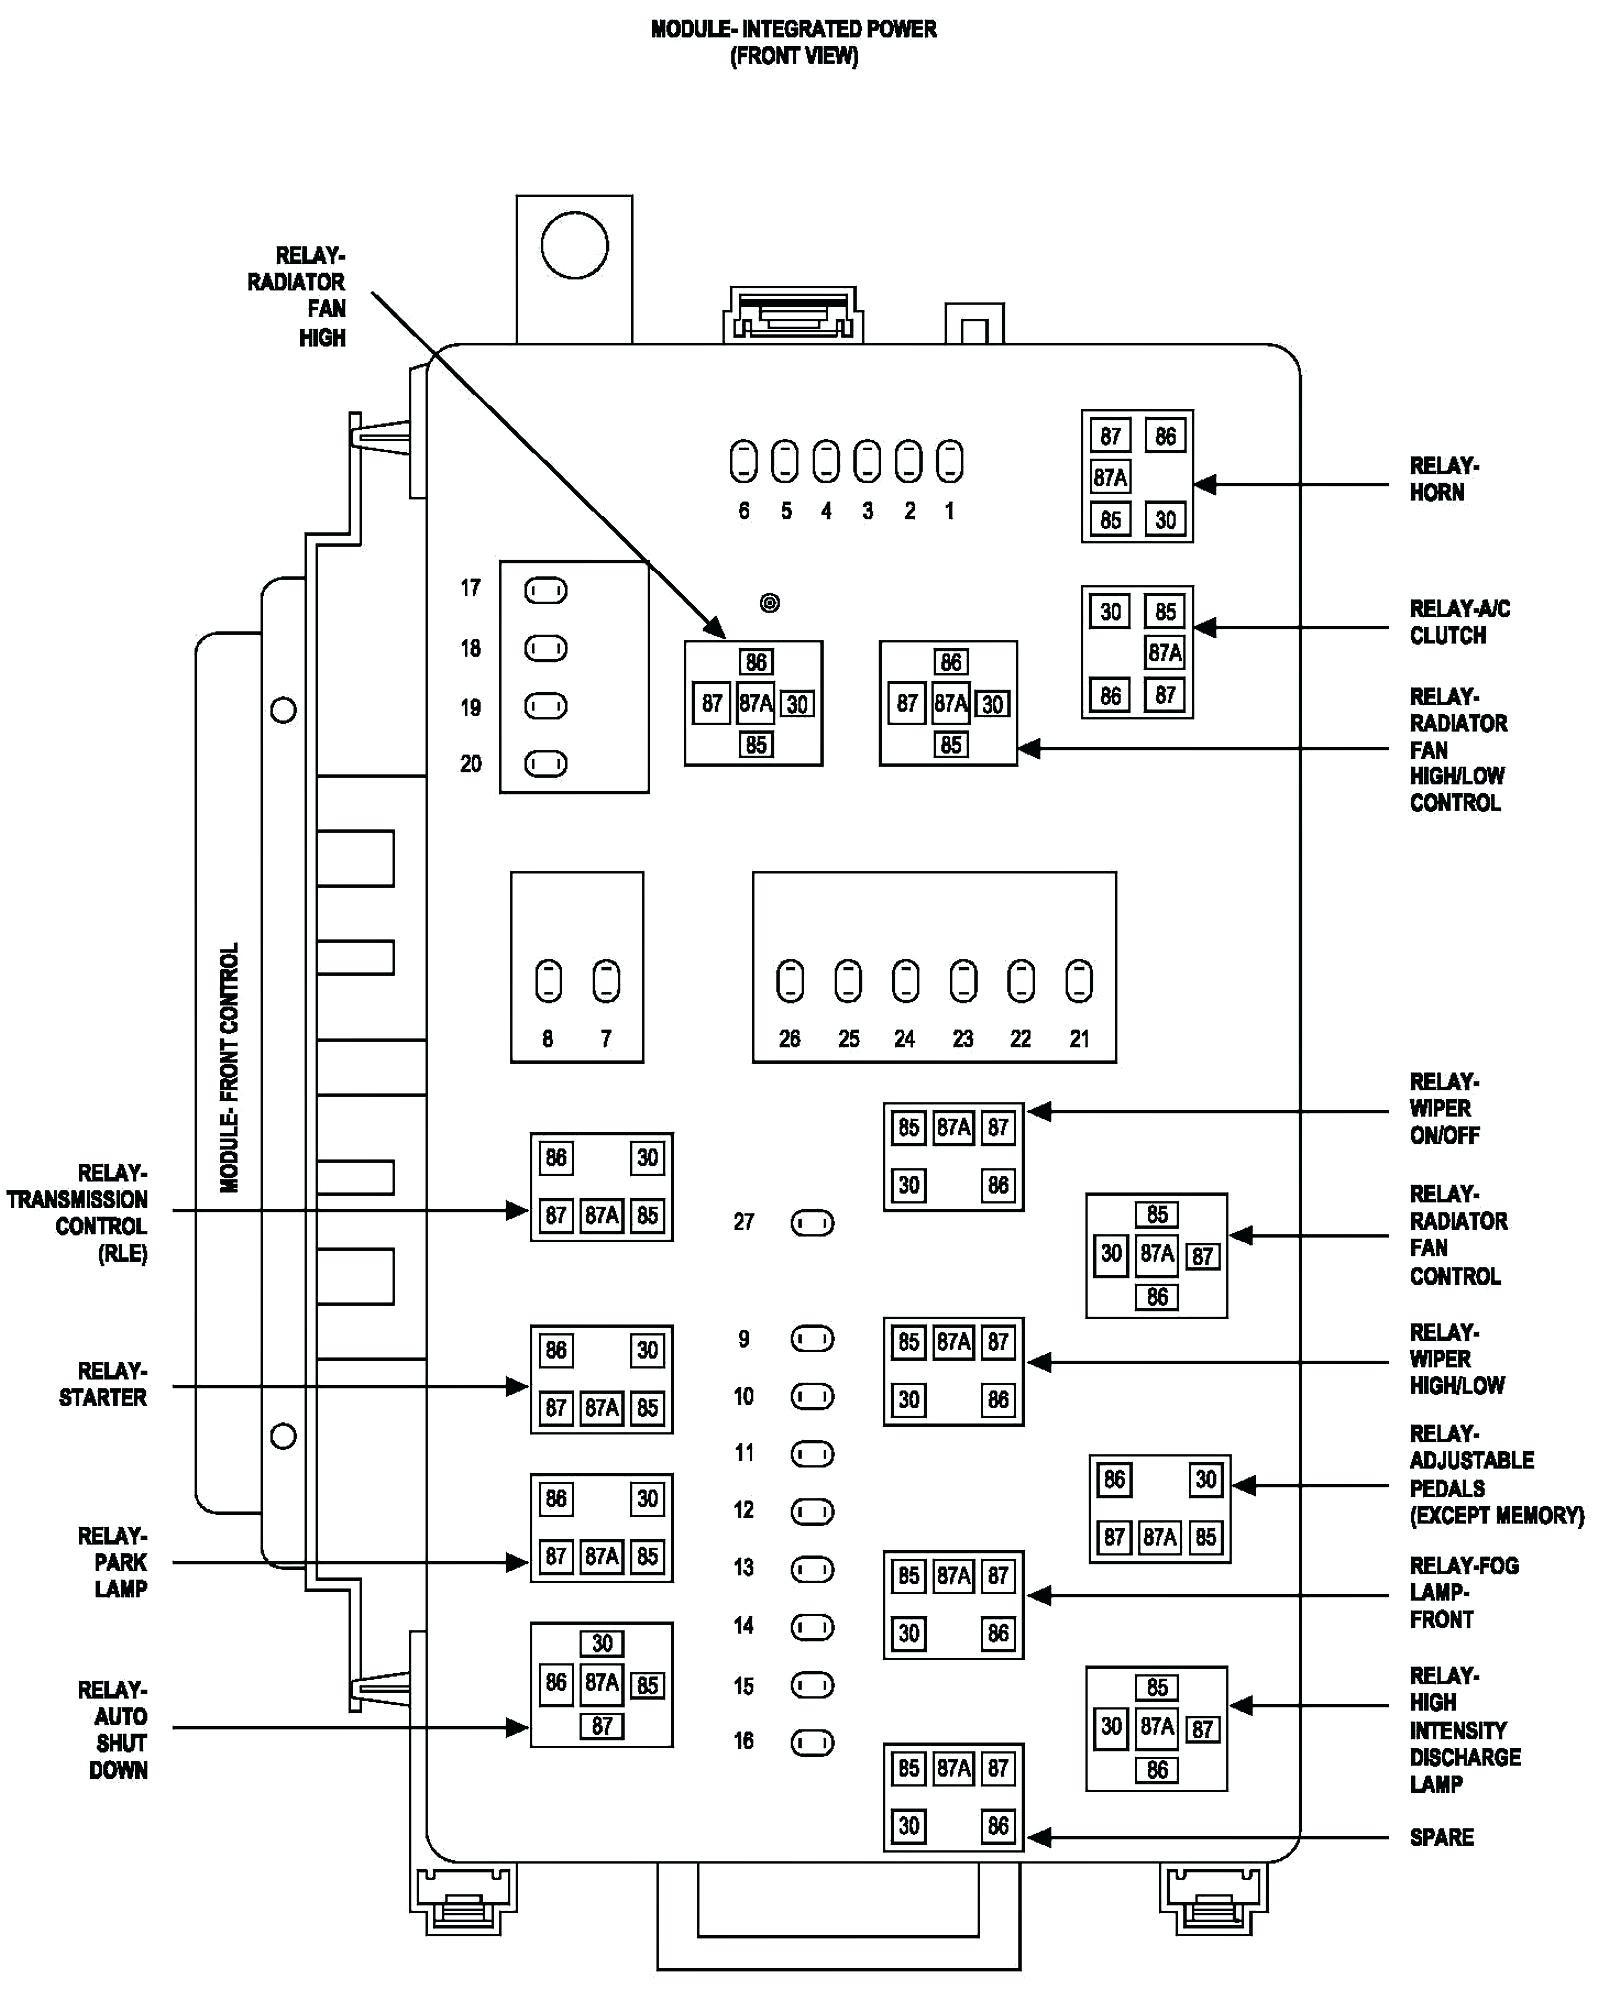 hight resolution of 2008 magnum fuse diagram wiring diagram paper07 dodge magnum fuse diagram wiring diagram inside 2008 magnum